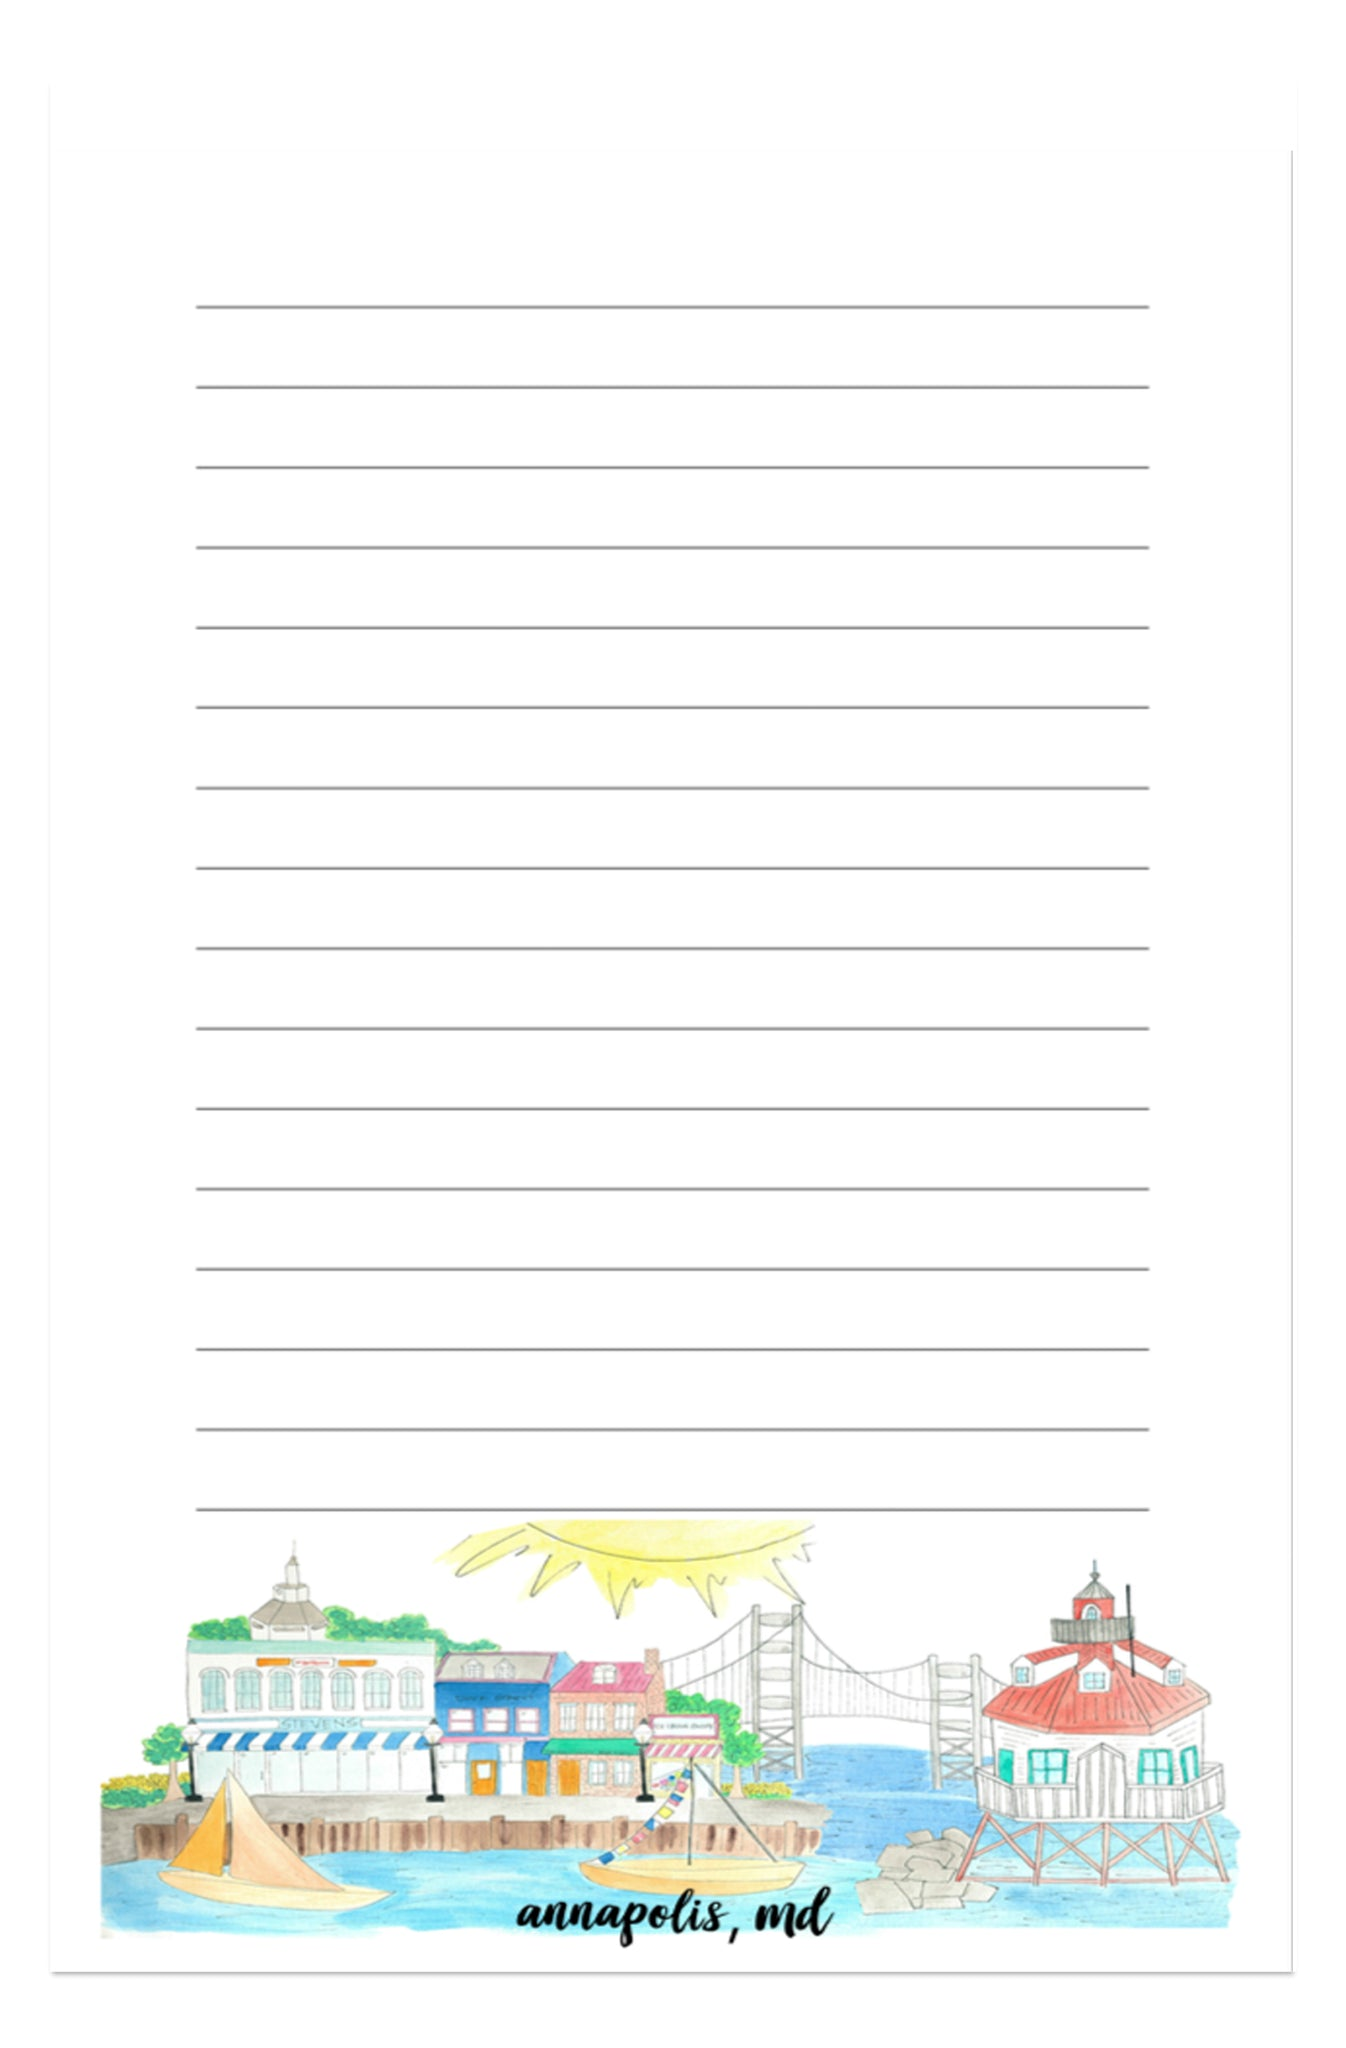 Annapolis, MD Notepad